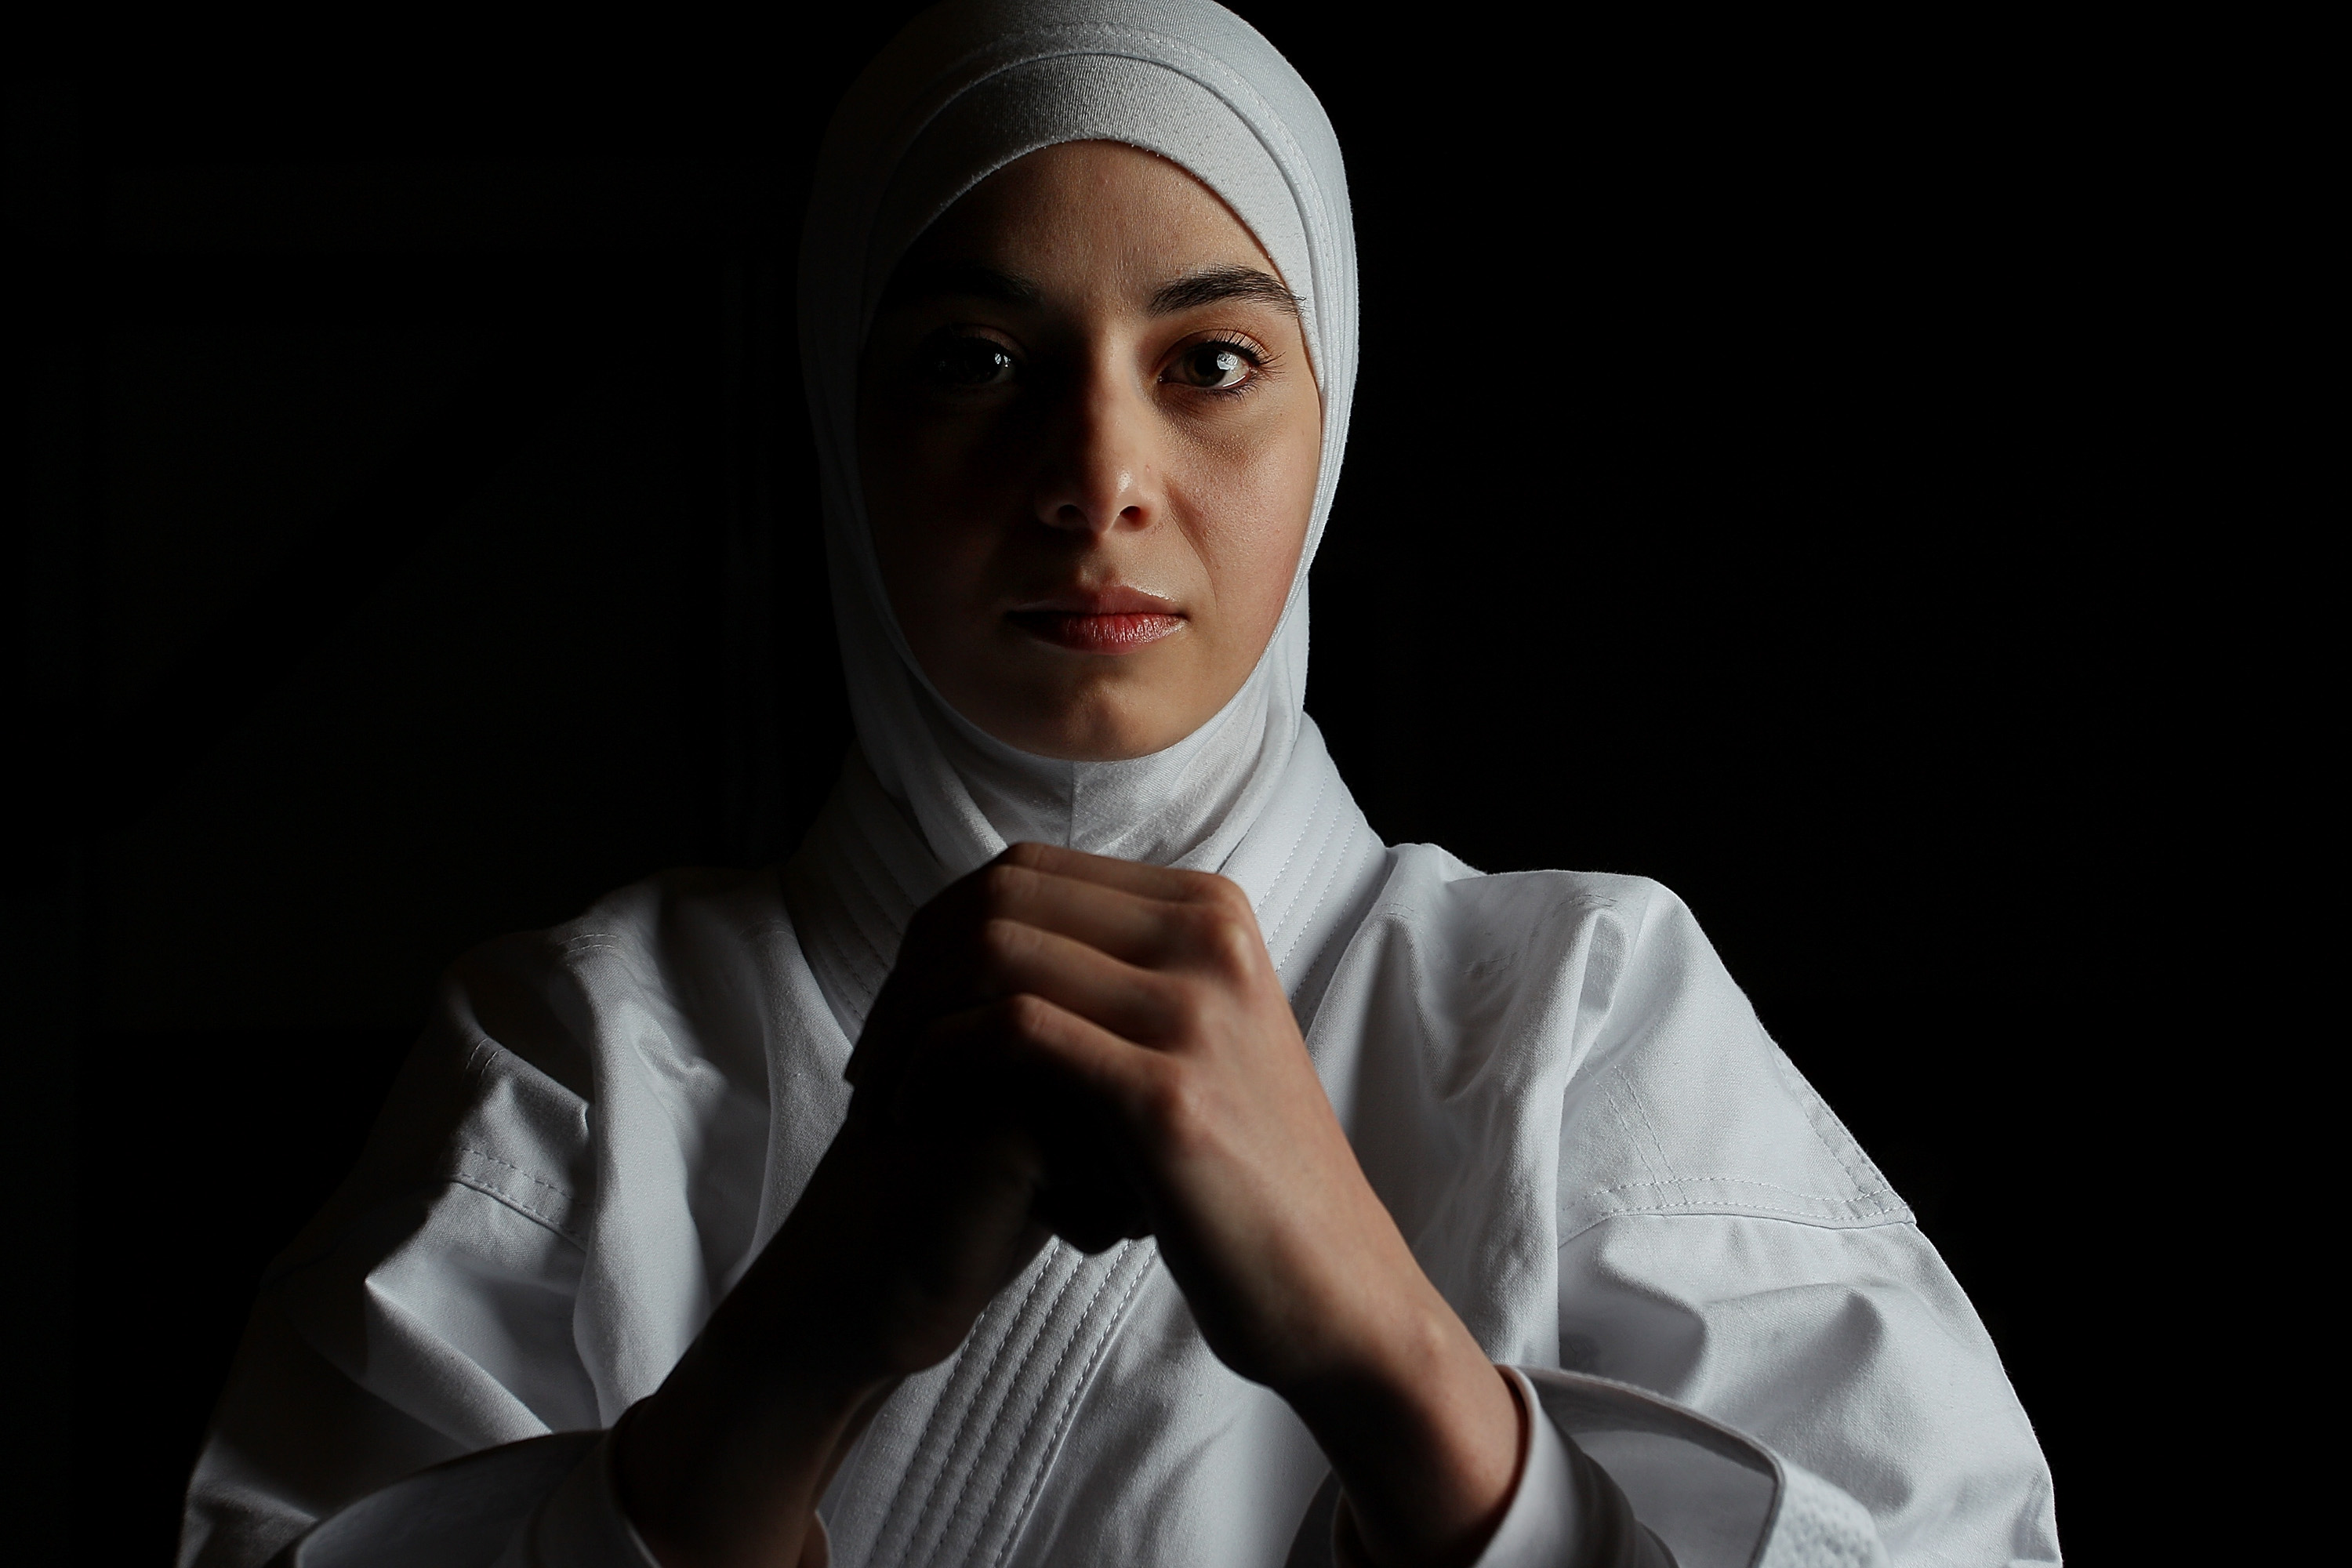 The Secret Lives of Scientists: Fighting stereotypes of women in Islam, one karate kick at a time